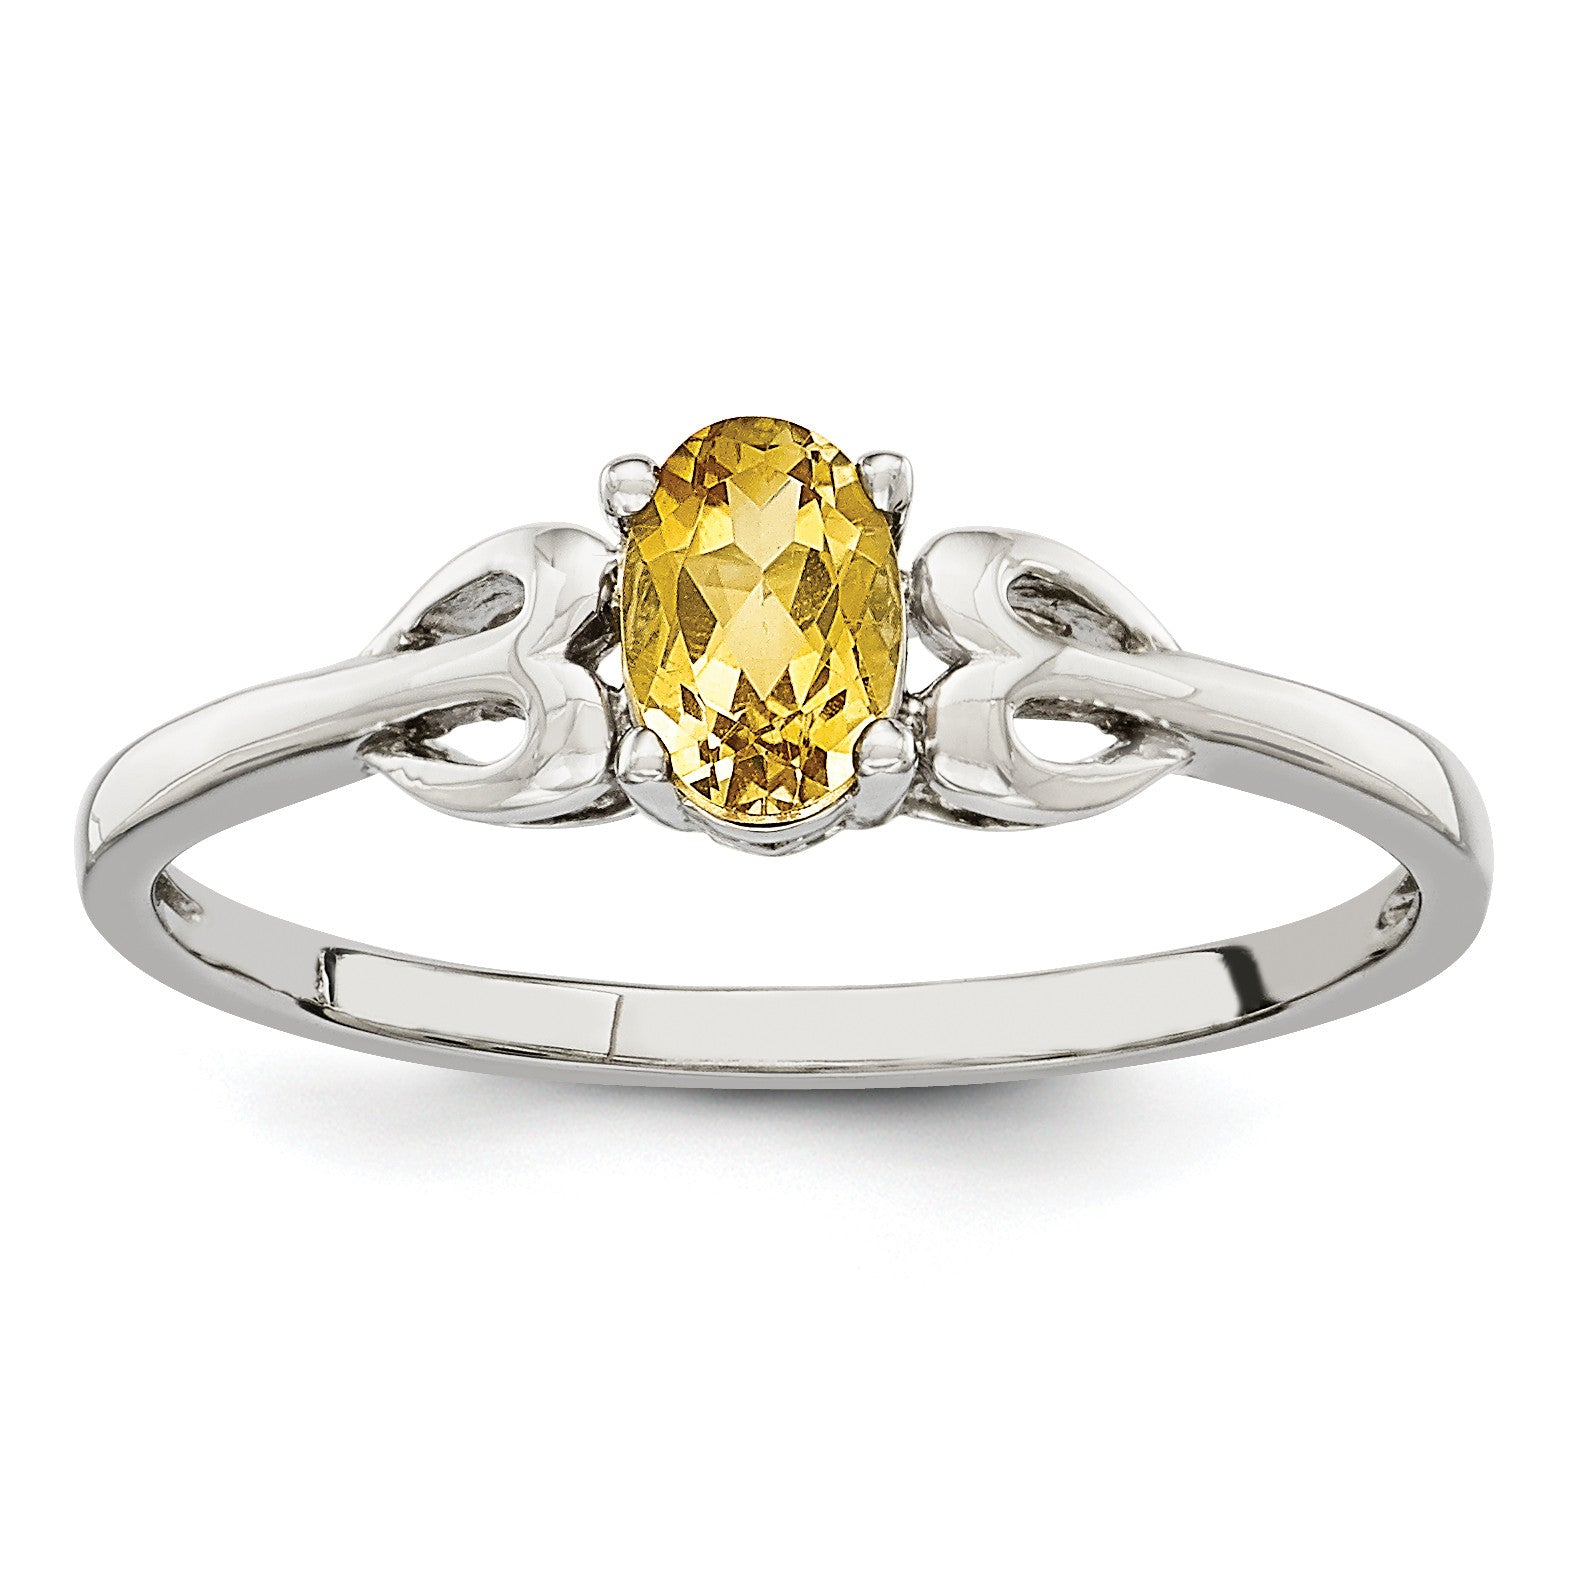 Sterling Silver Rhodium-plated Citrine Ring QBR20NOV - shirin-diamonds